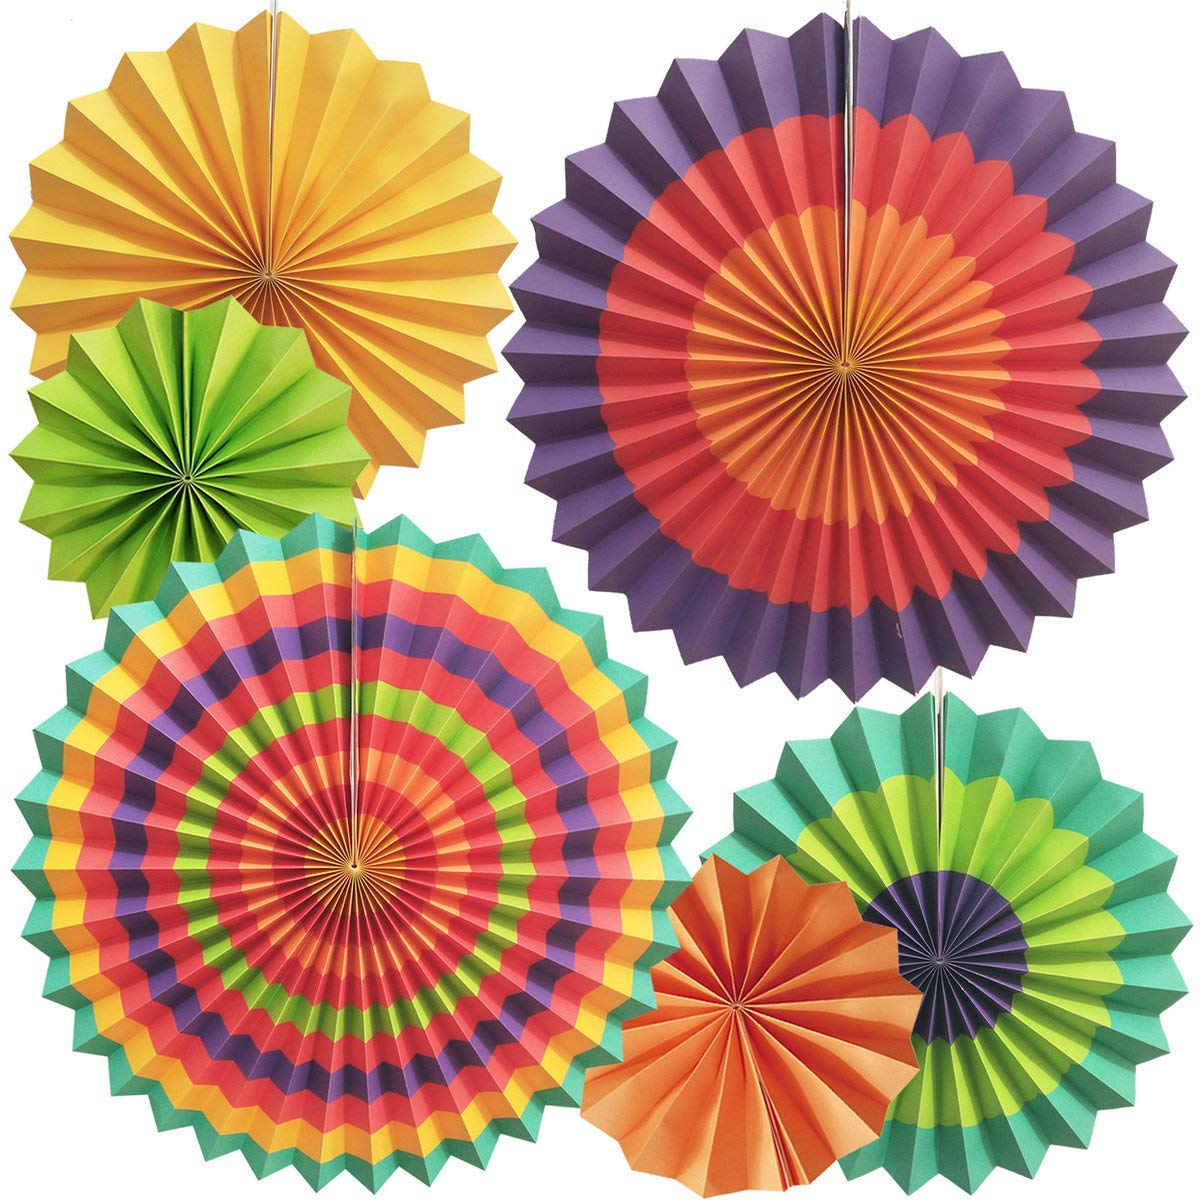 6 Pack Party Hanging Paper Fans Set,Round Pattern Paper Garlands Decoration for Birthday Wedding Graduation Events Accessories Purple